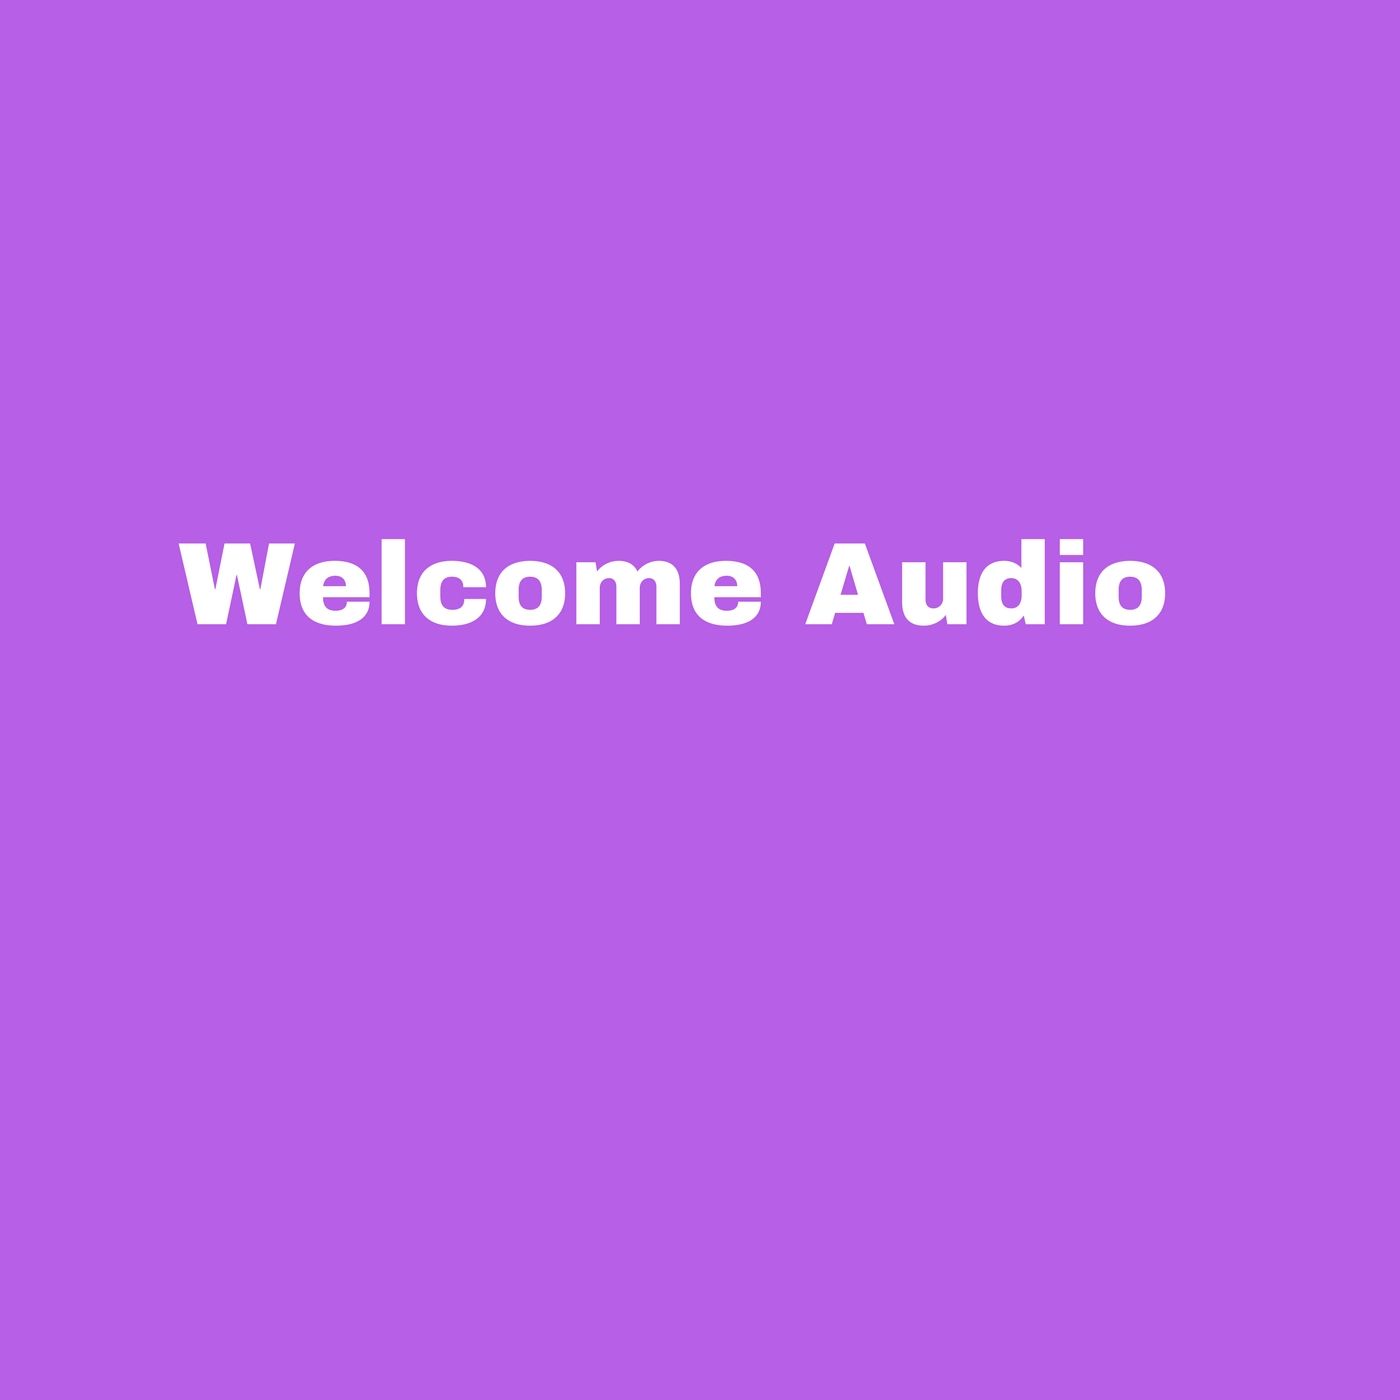 MEMBERSHIP: LISTEN TO YOUR WELCOME AUDIO